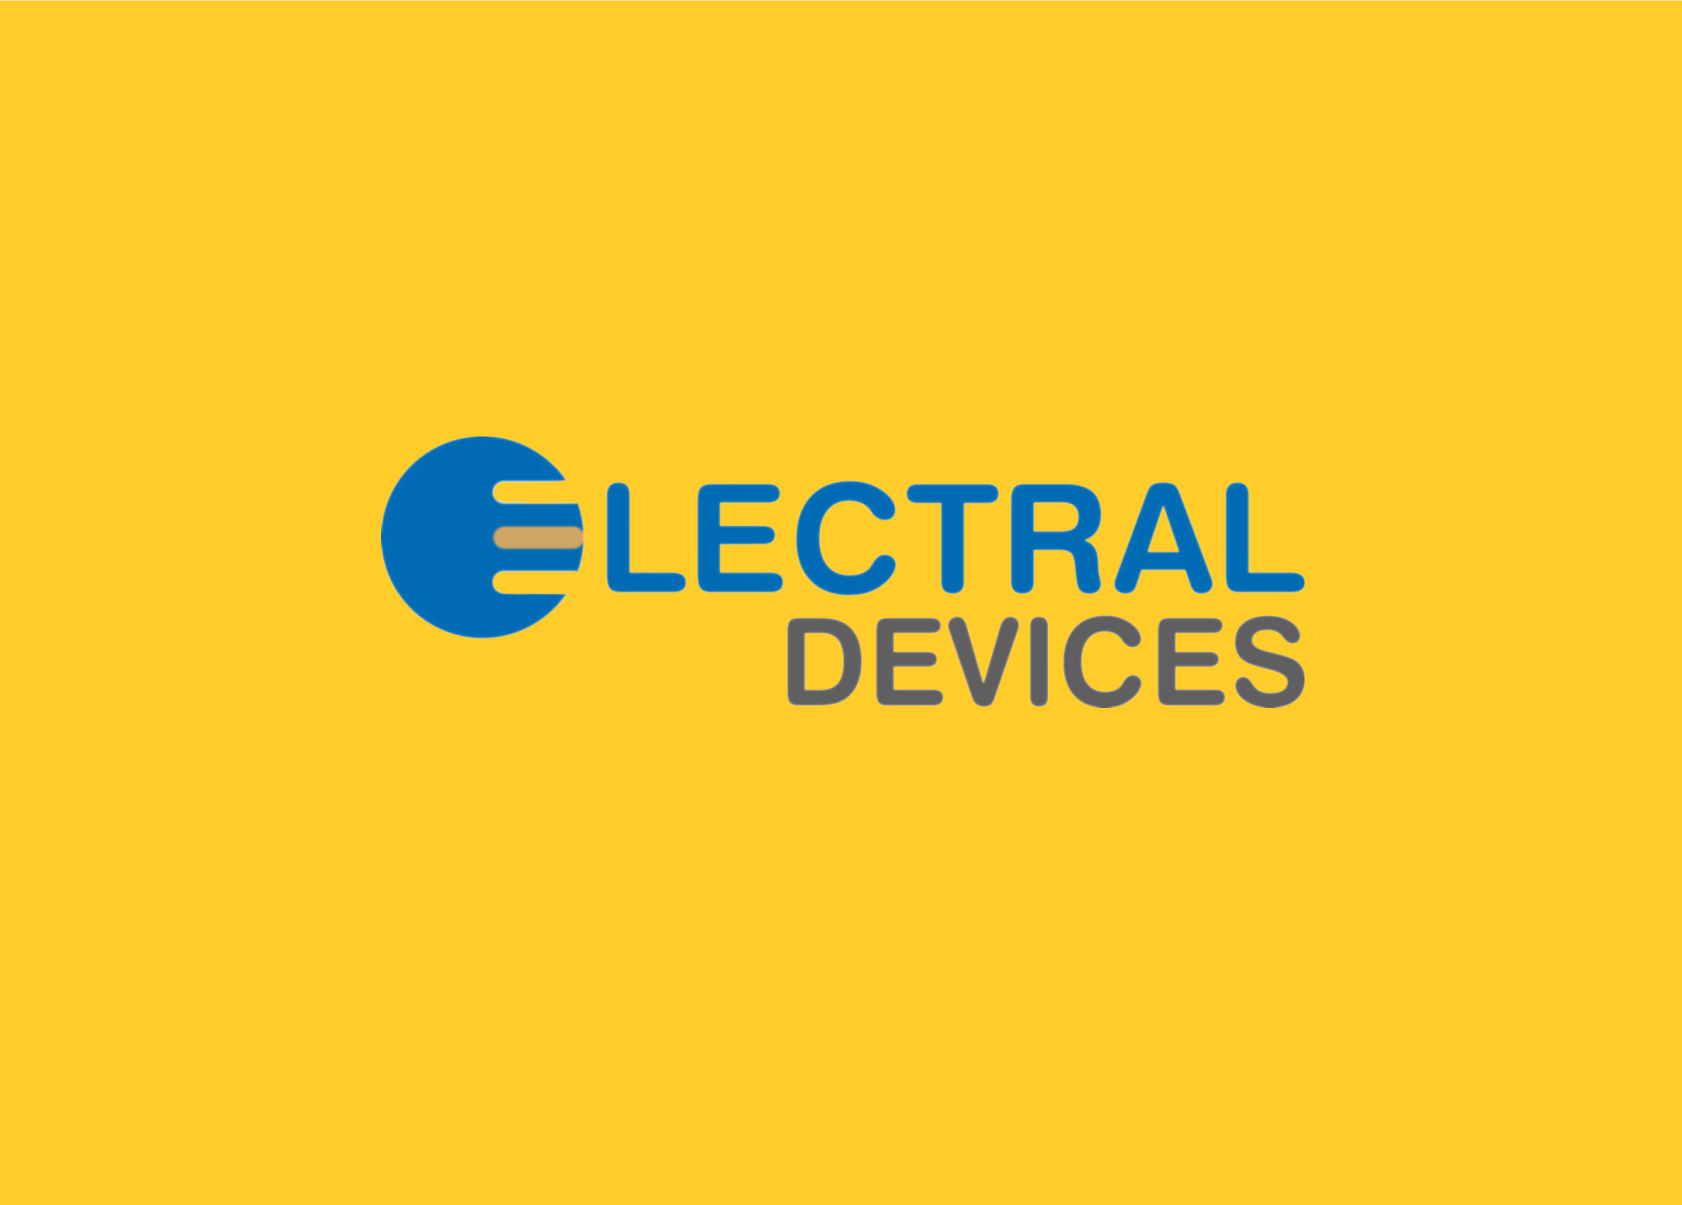 Electral Devices